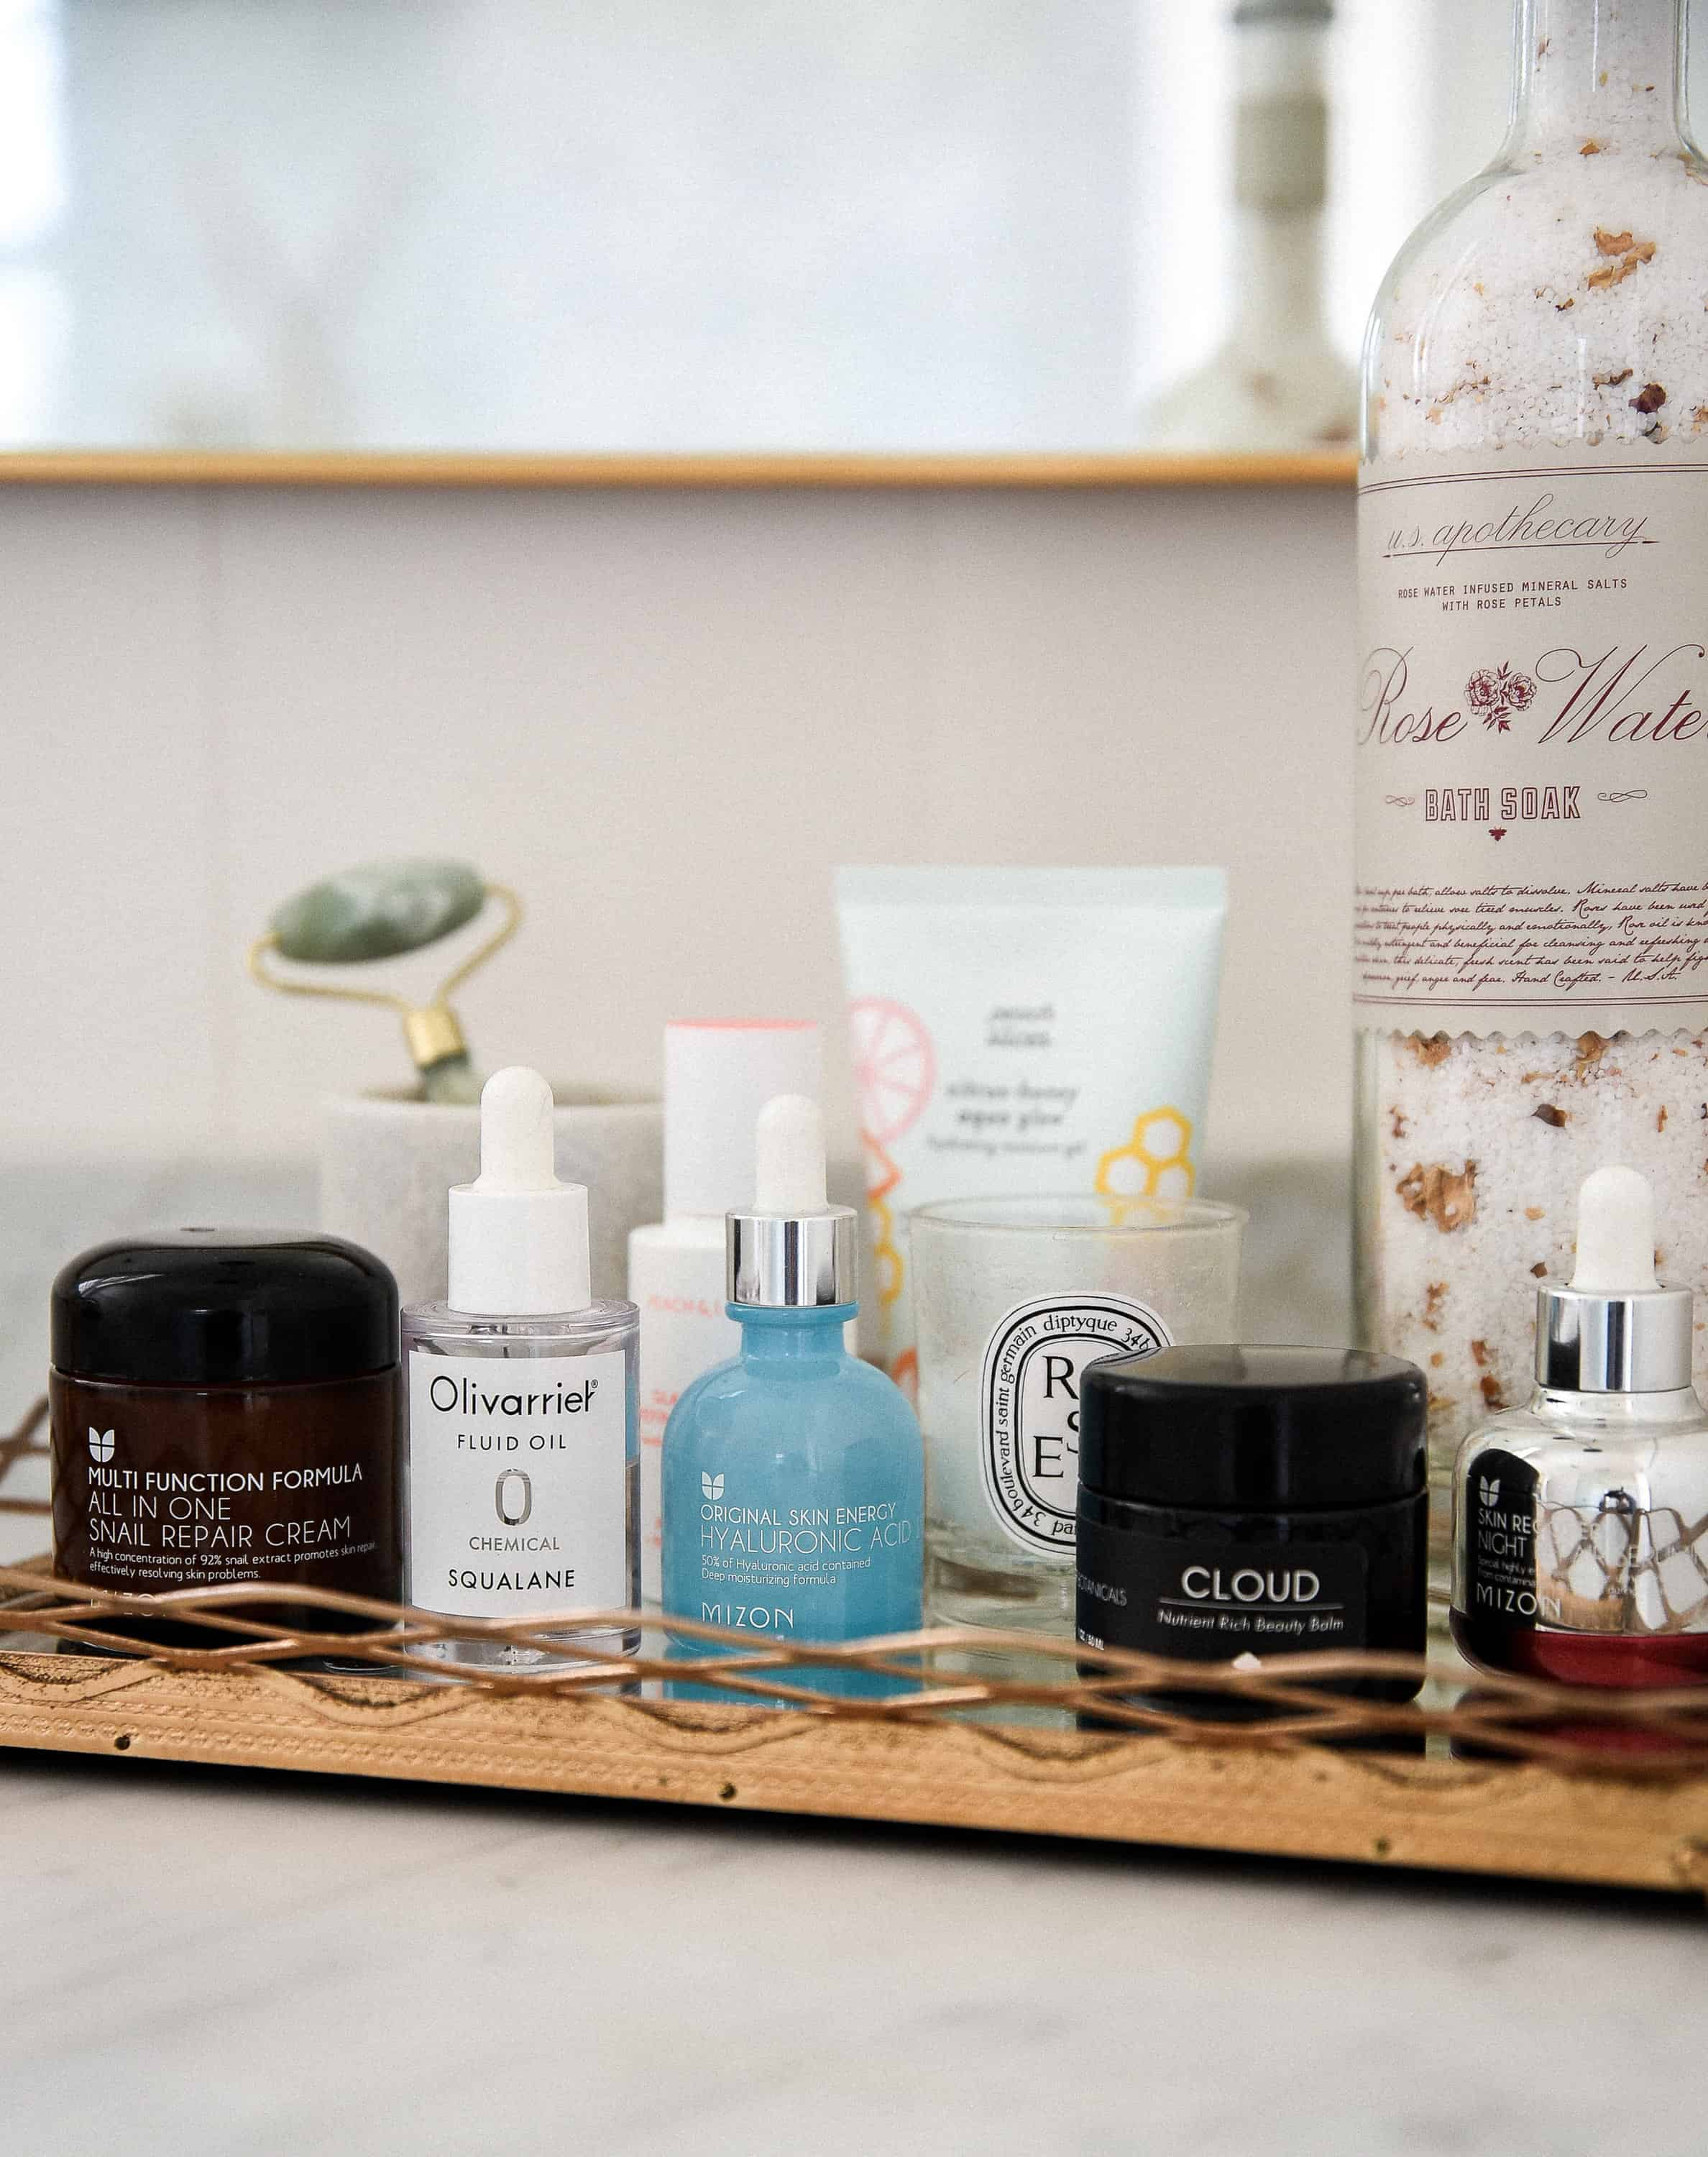 Over the past year I have discovered some wonderful skincare products that have transformed my skin, I hope you enjoy them too!